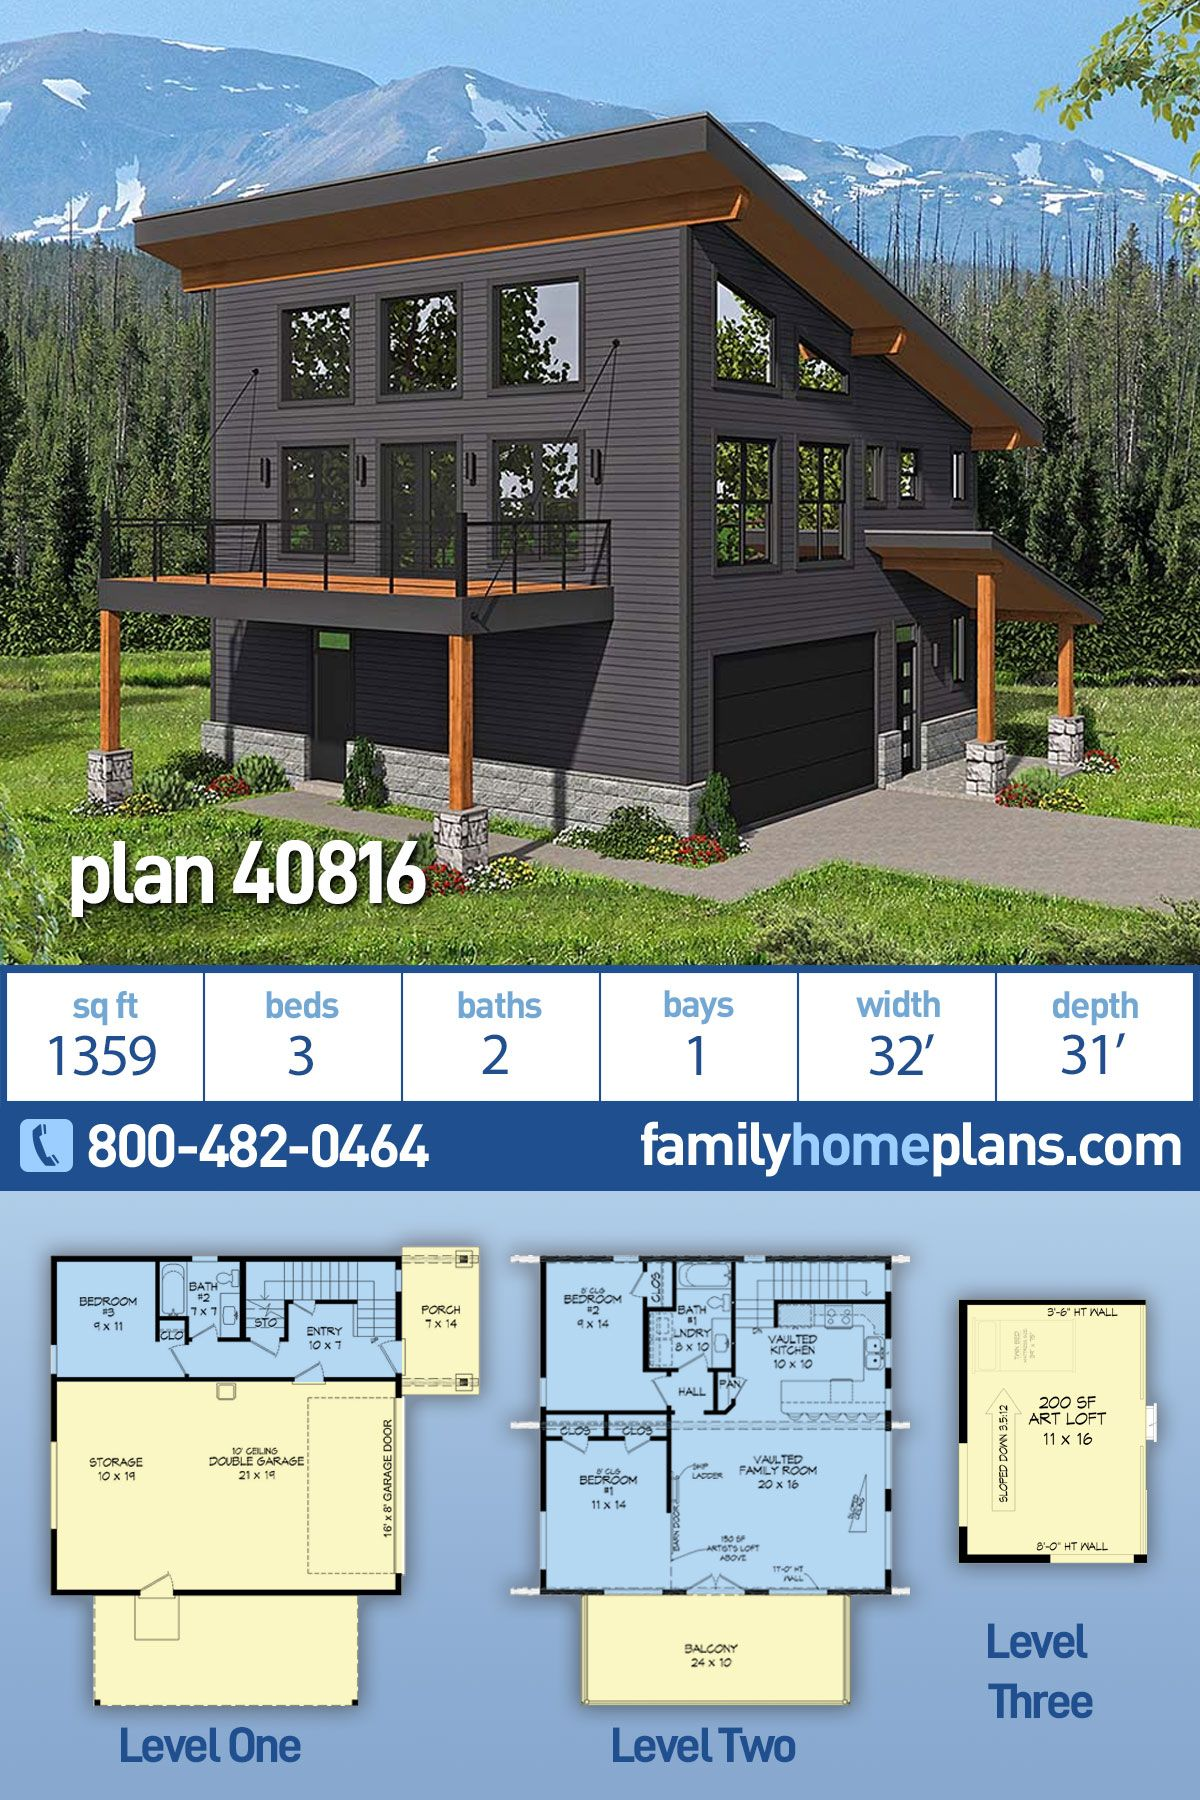 Modern Style Garage Living Plan 40816 With 3 Bed 2 Bath 2 Car Garage In 2020 Modern Style House Plans Vacation House Plans House Plans